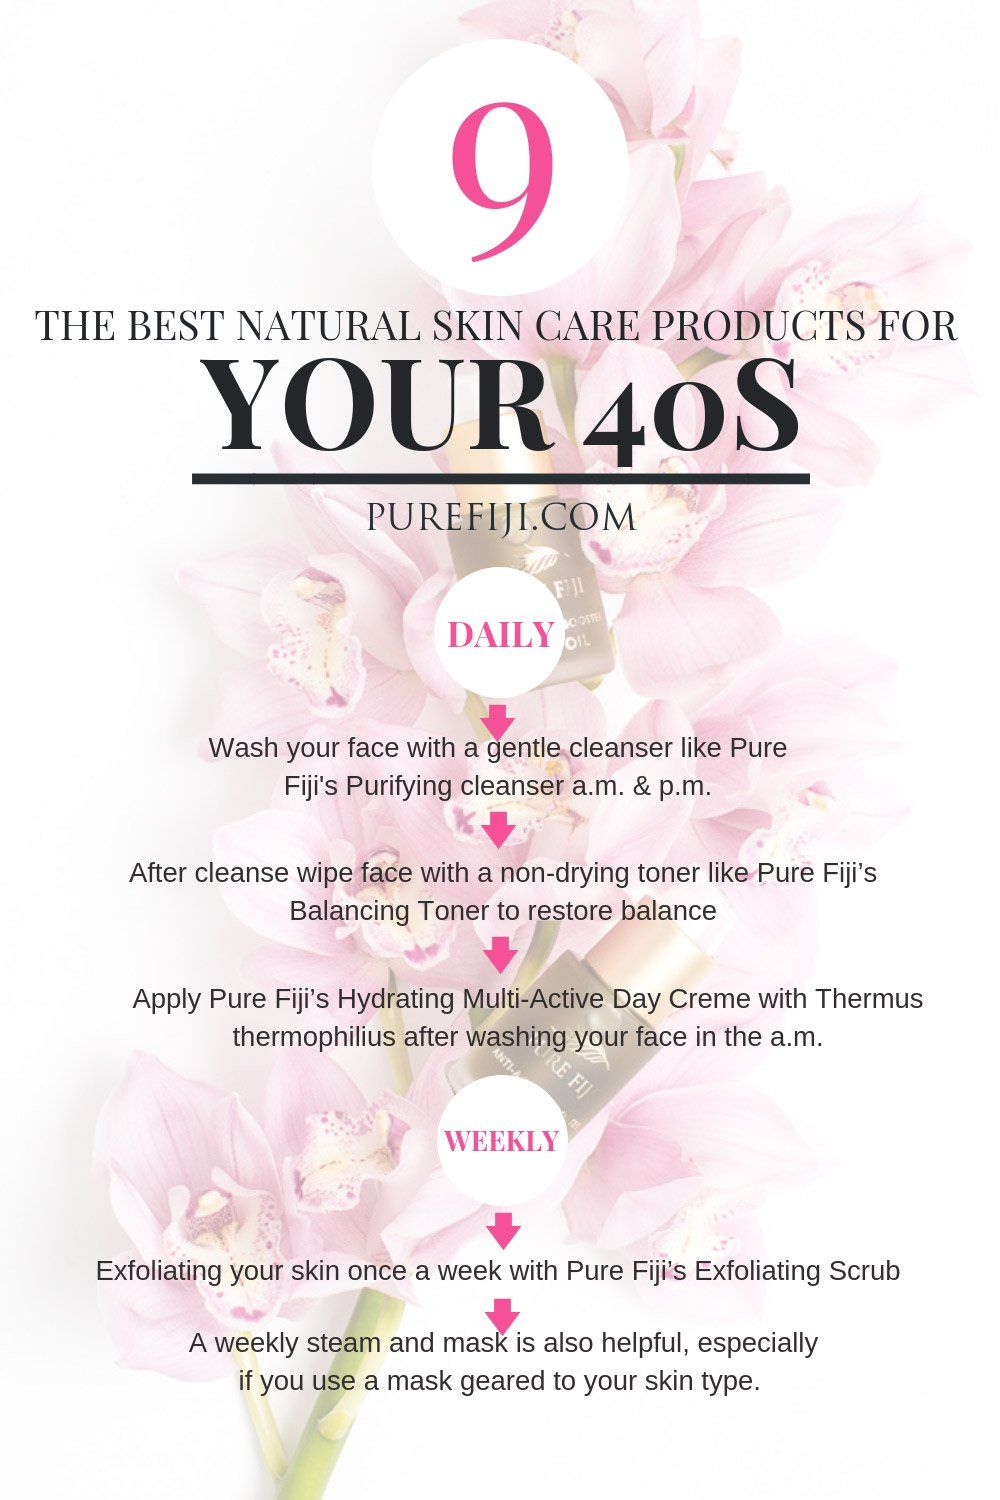 The Best Natural Skin Care Routine For Your 40s Natural Skin Care Best Natural Skin Care Skin Care